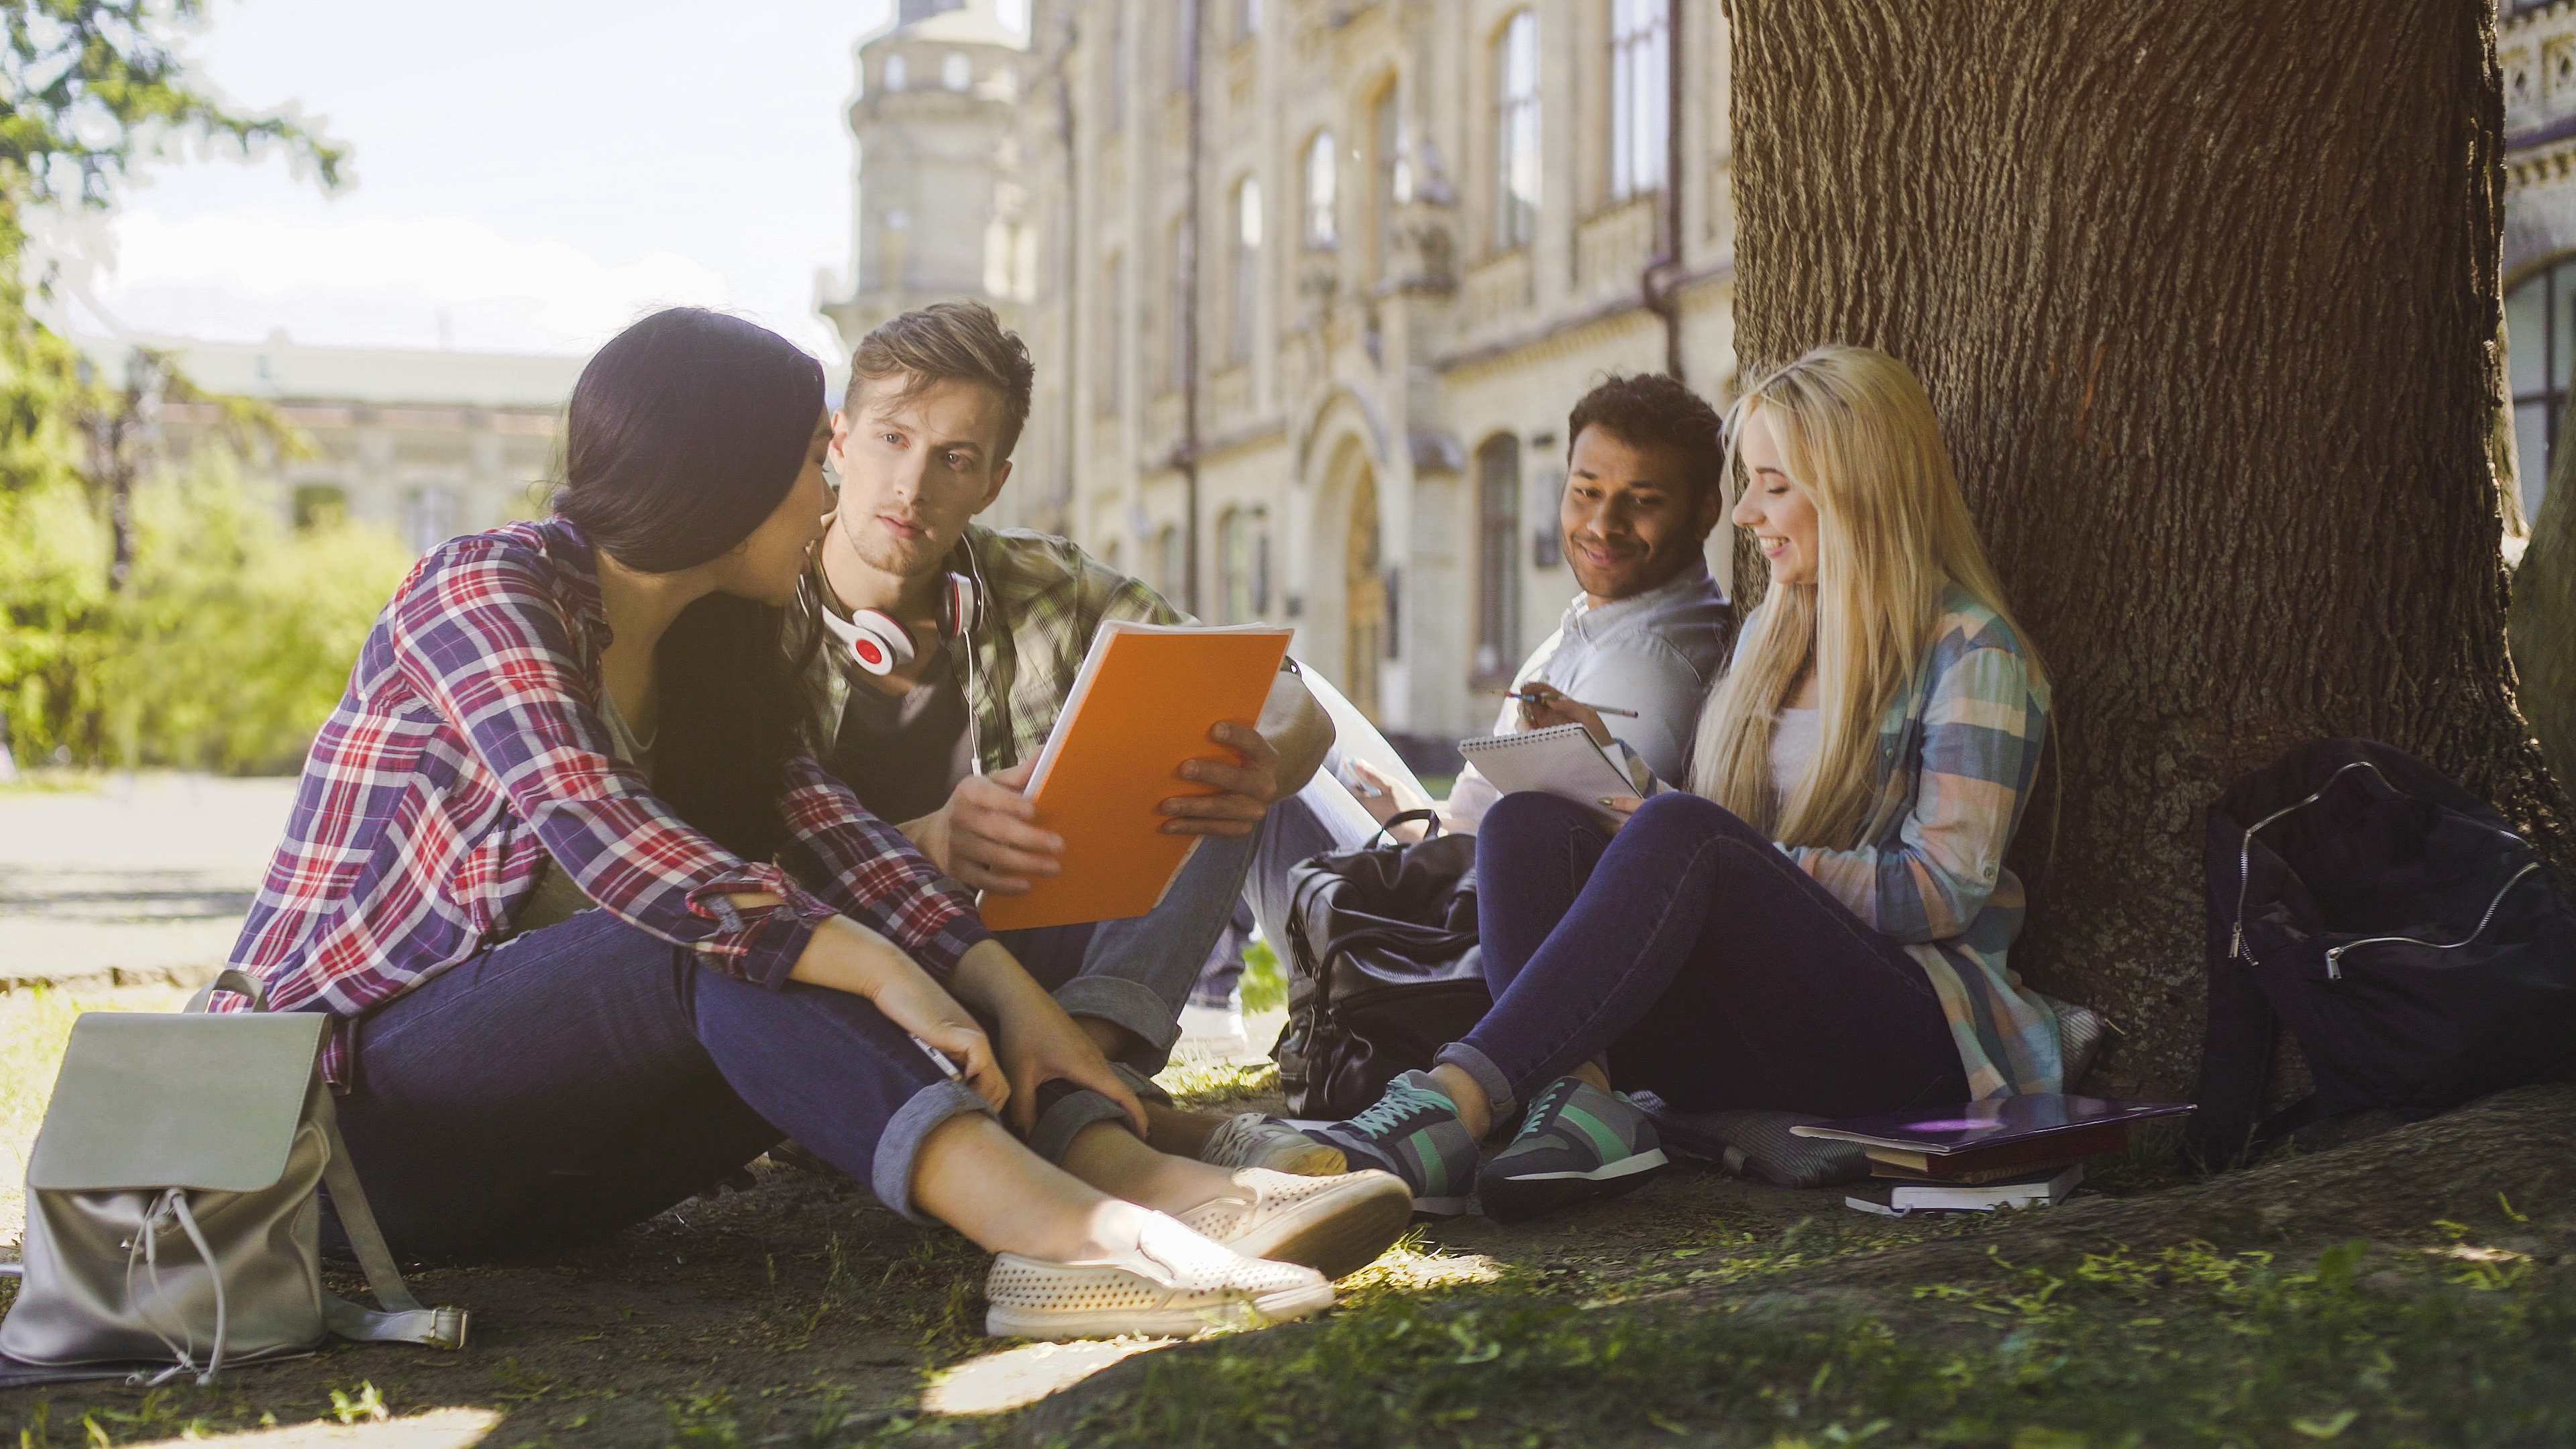 College students having discussion under tree on campus.